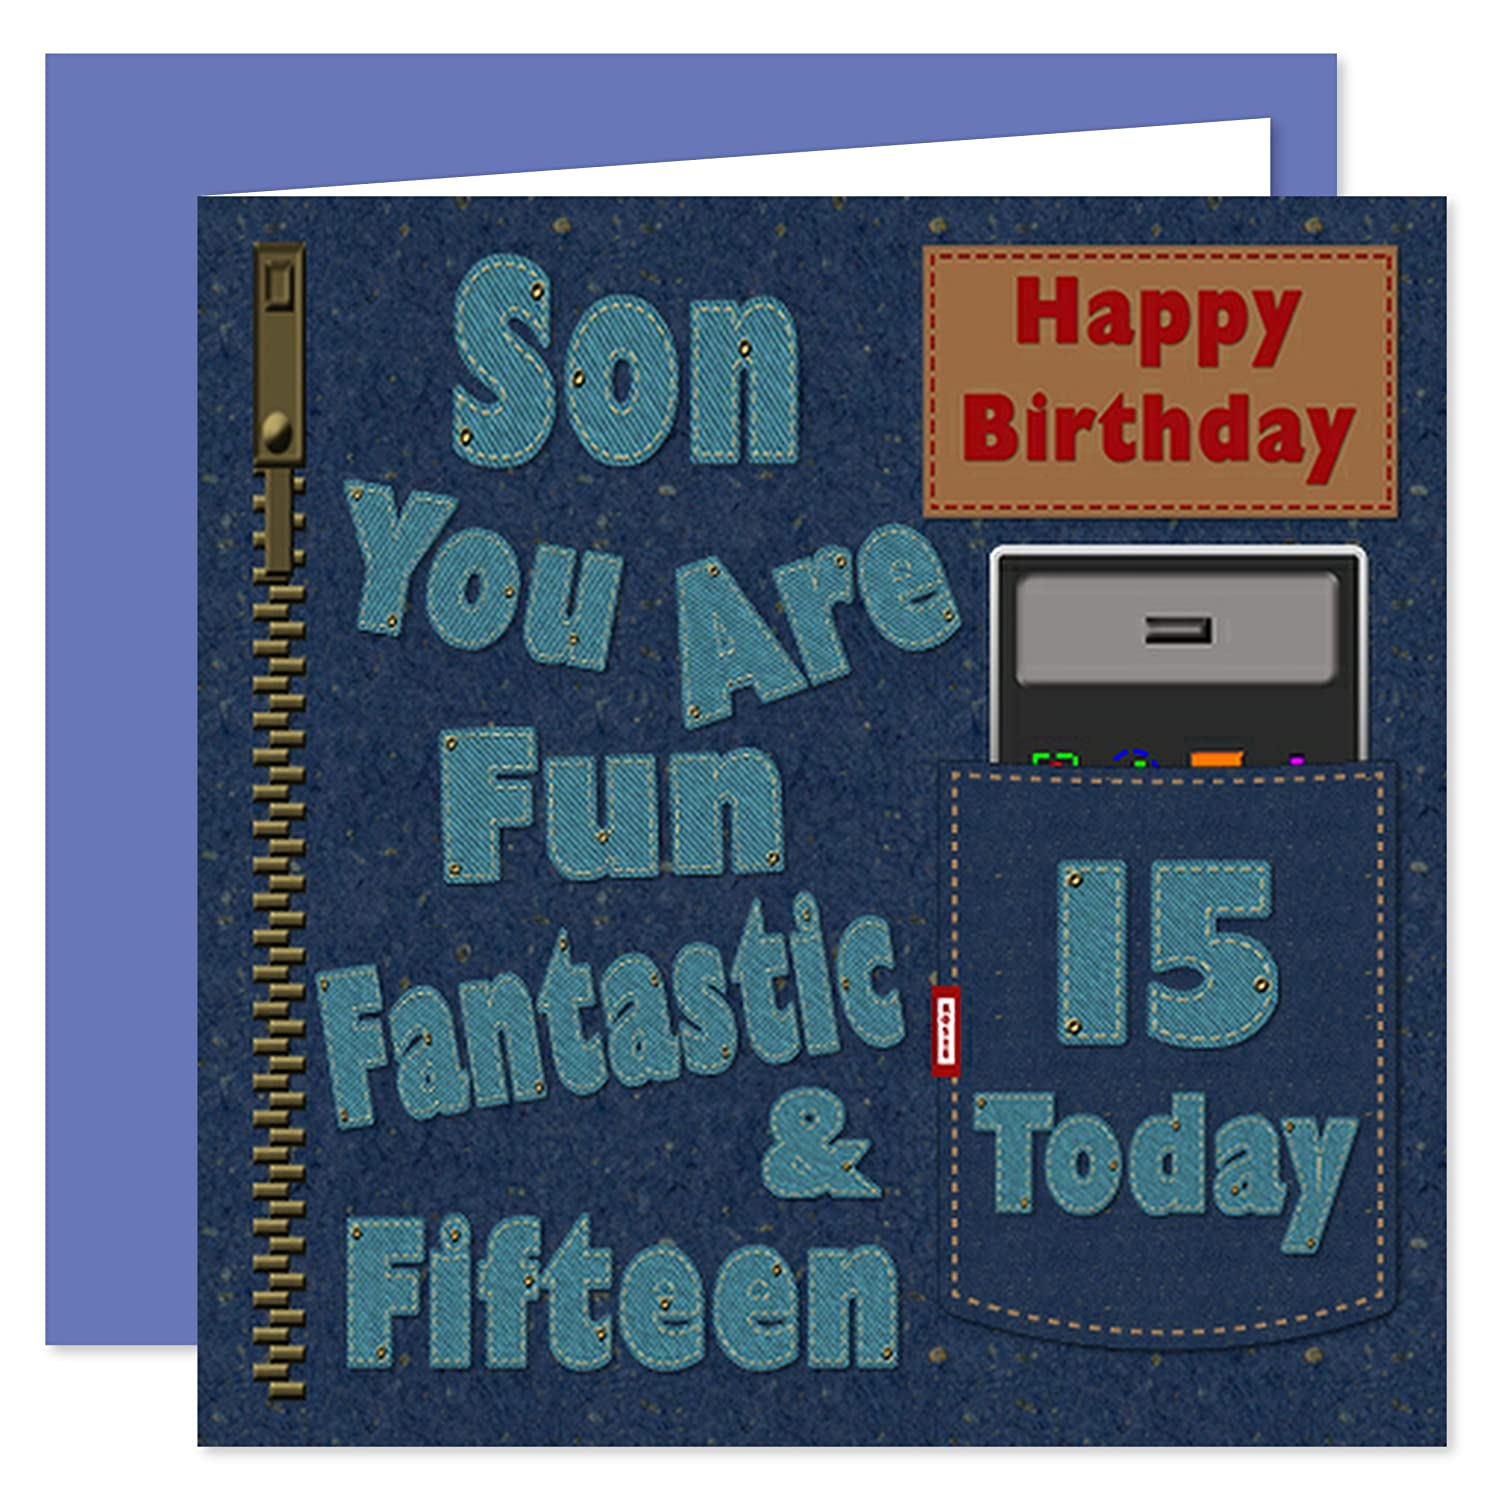 For A Special Son on your 15th Birthday Card Game Console Design